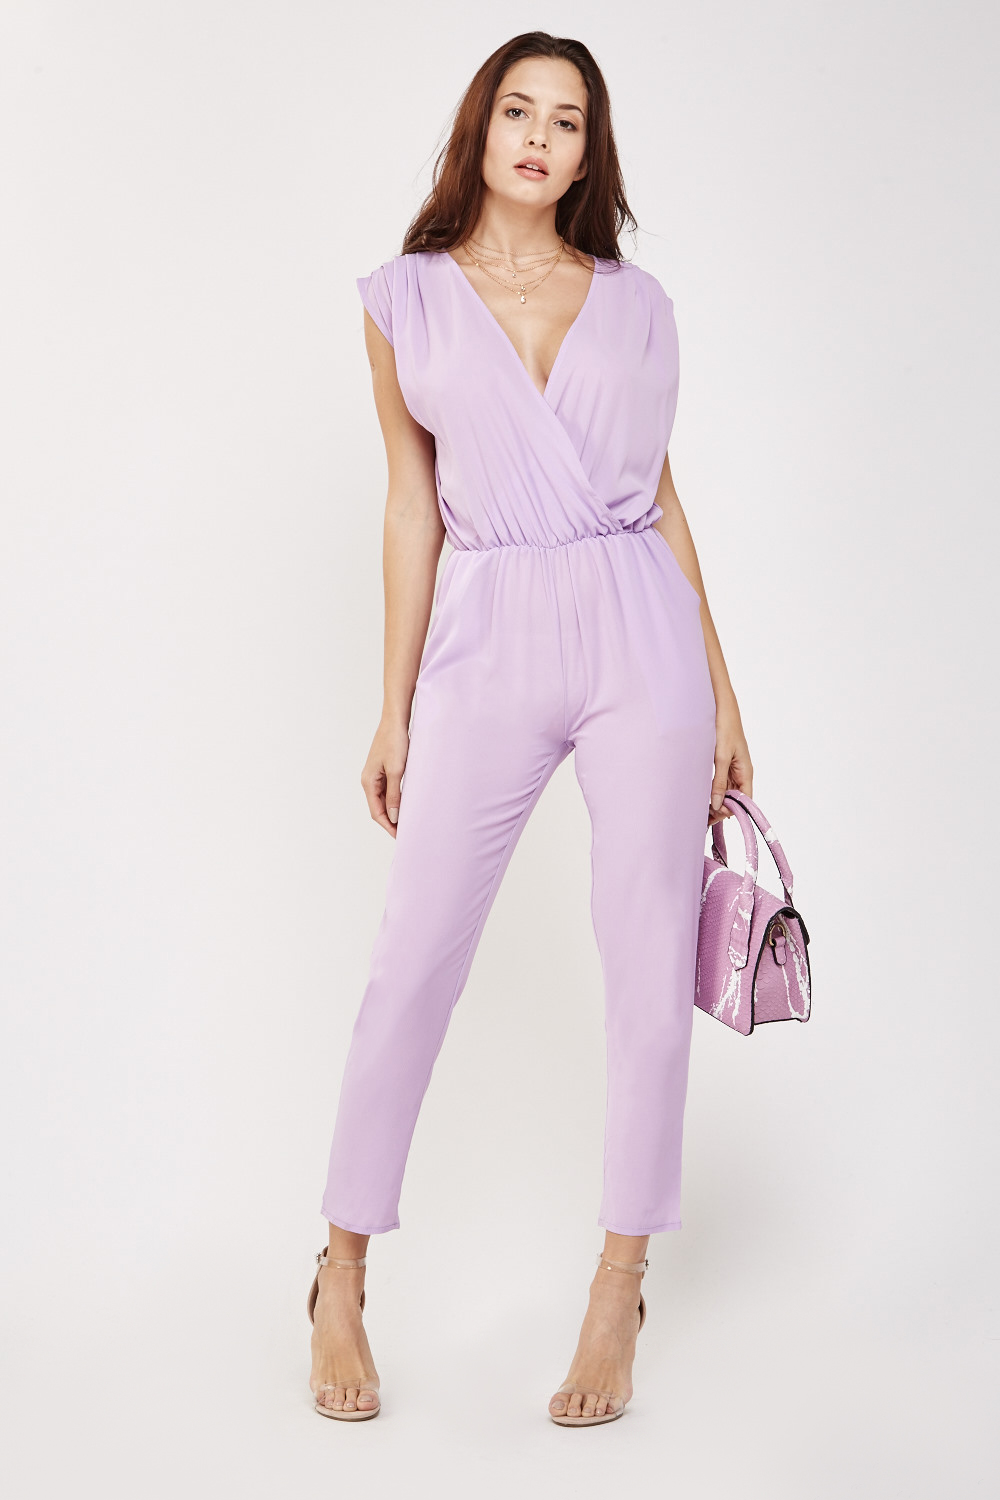 204086426da7f Sleeveless Wrap Jumpsuit - 4 Colours - Just £5